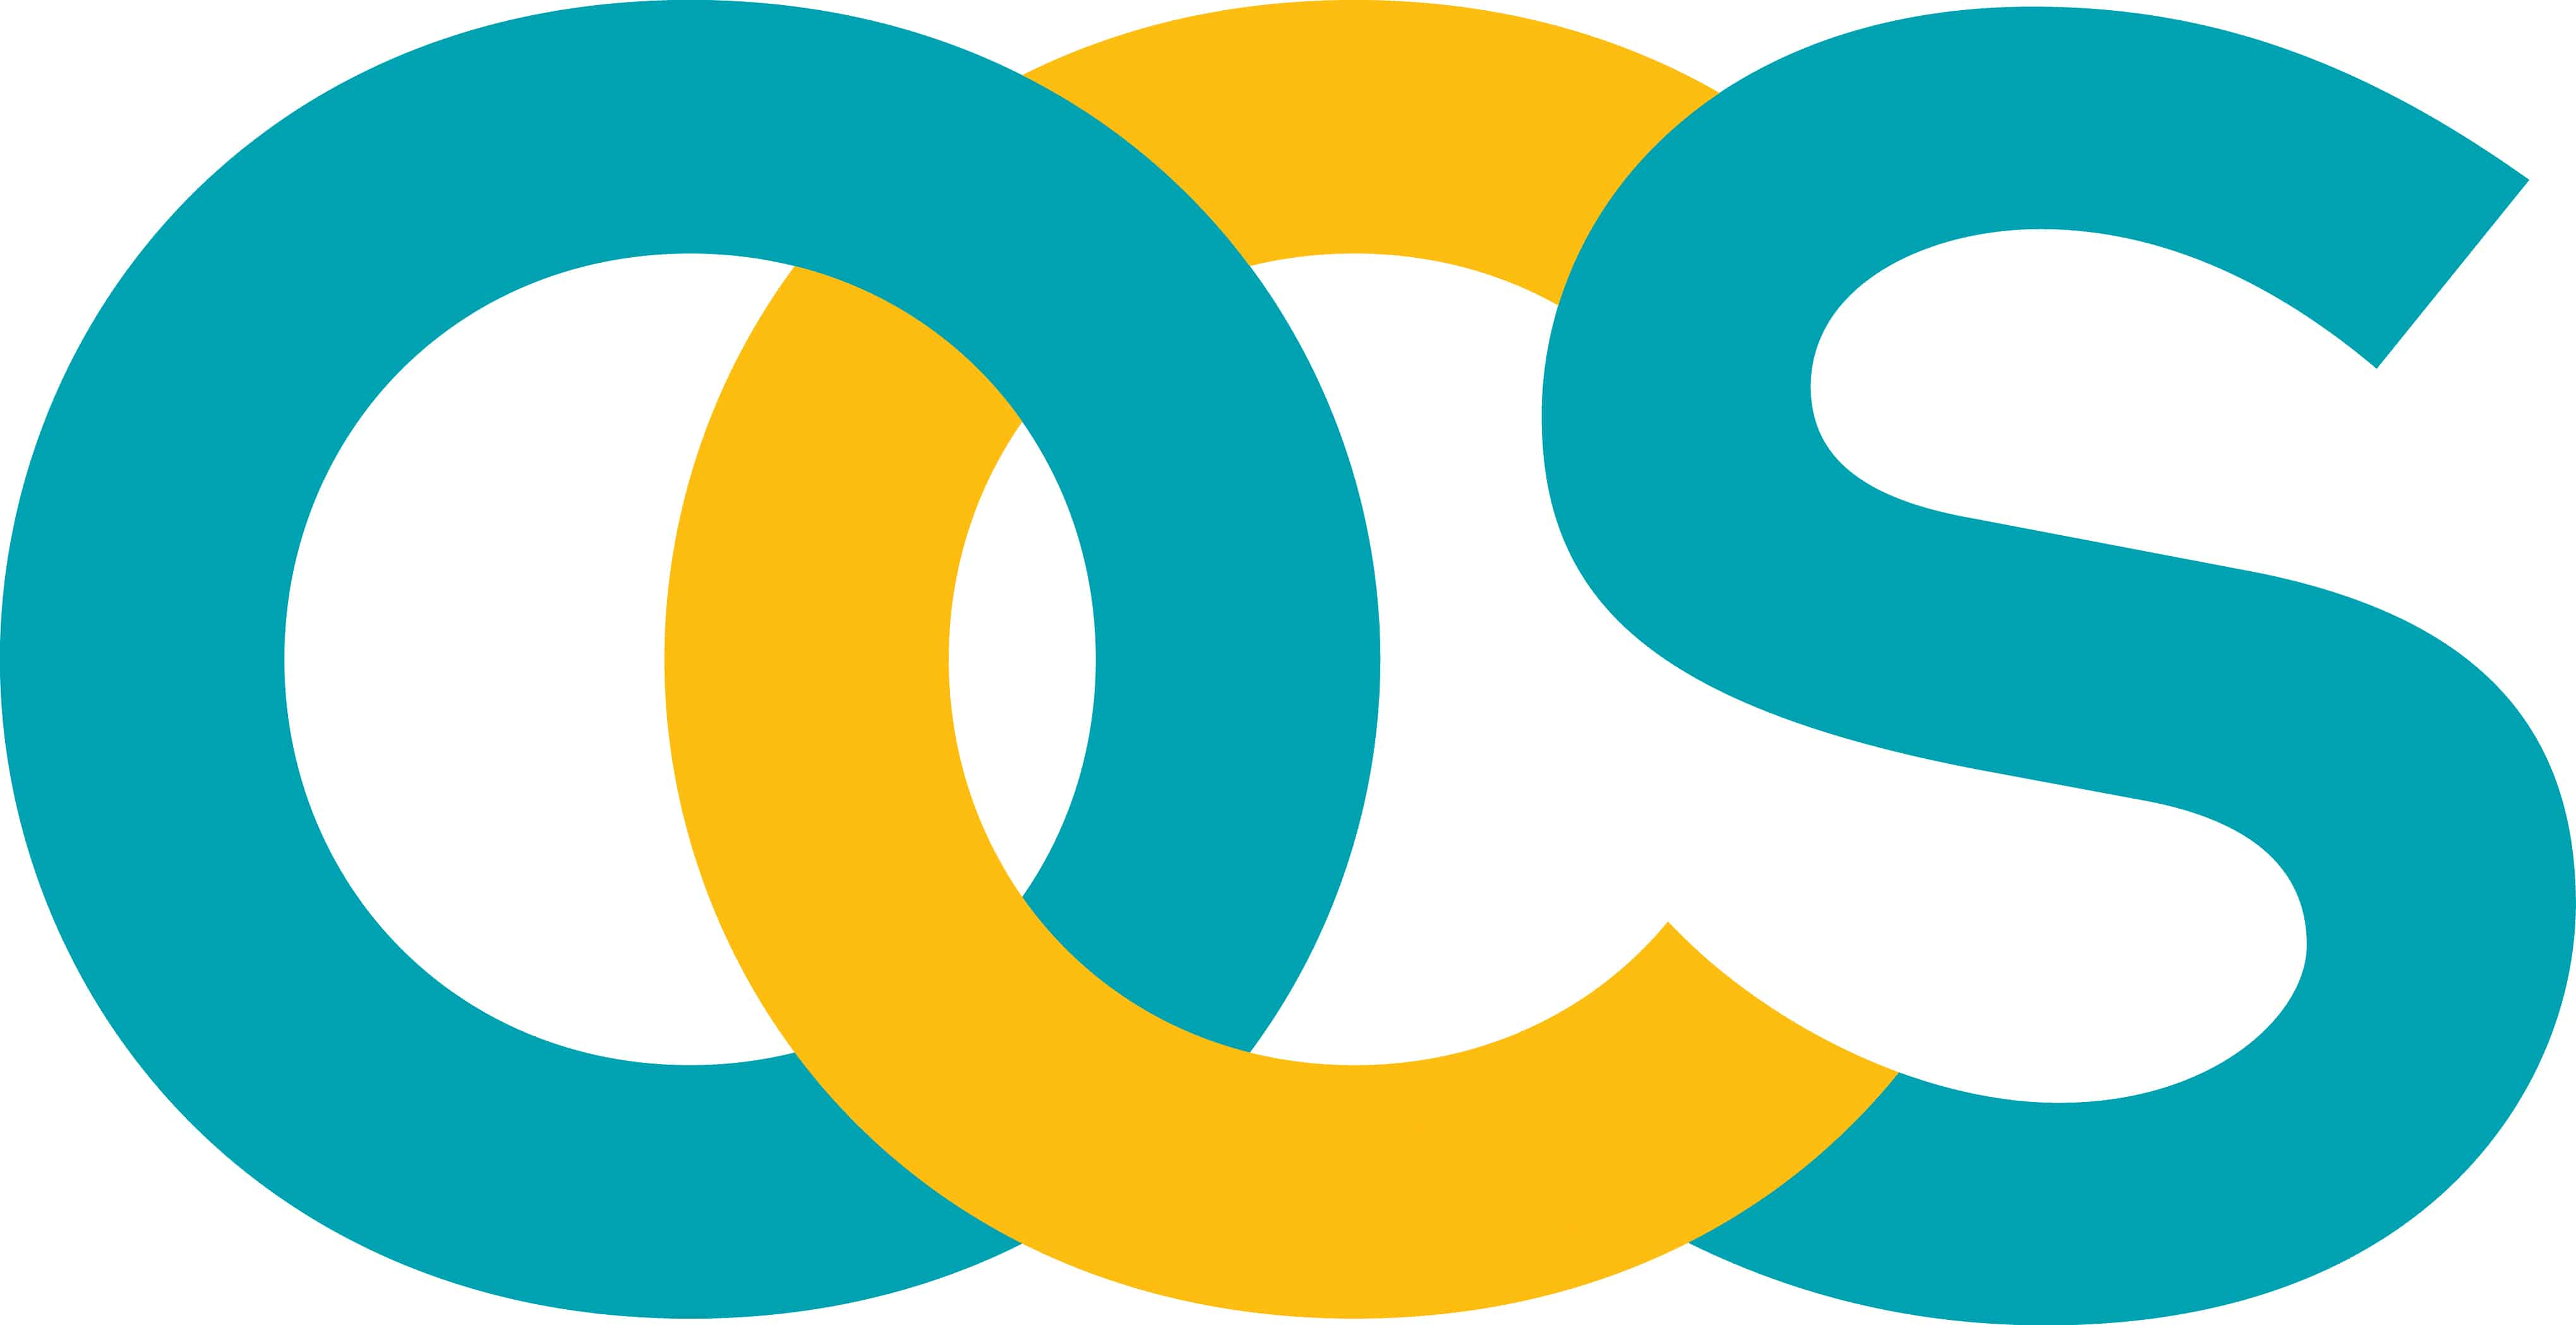 Ocs Buys Parts Of Fountains From Administrators Pro Landscaper